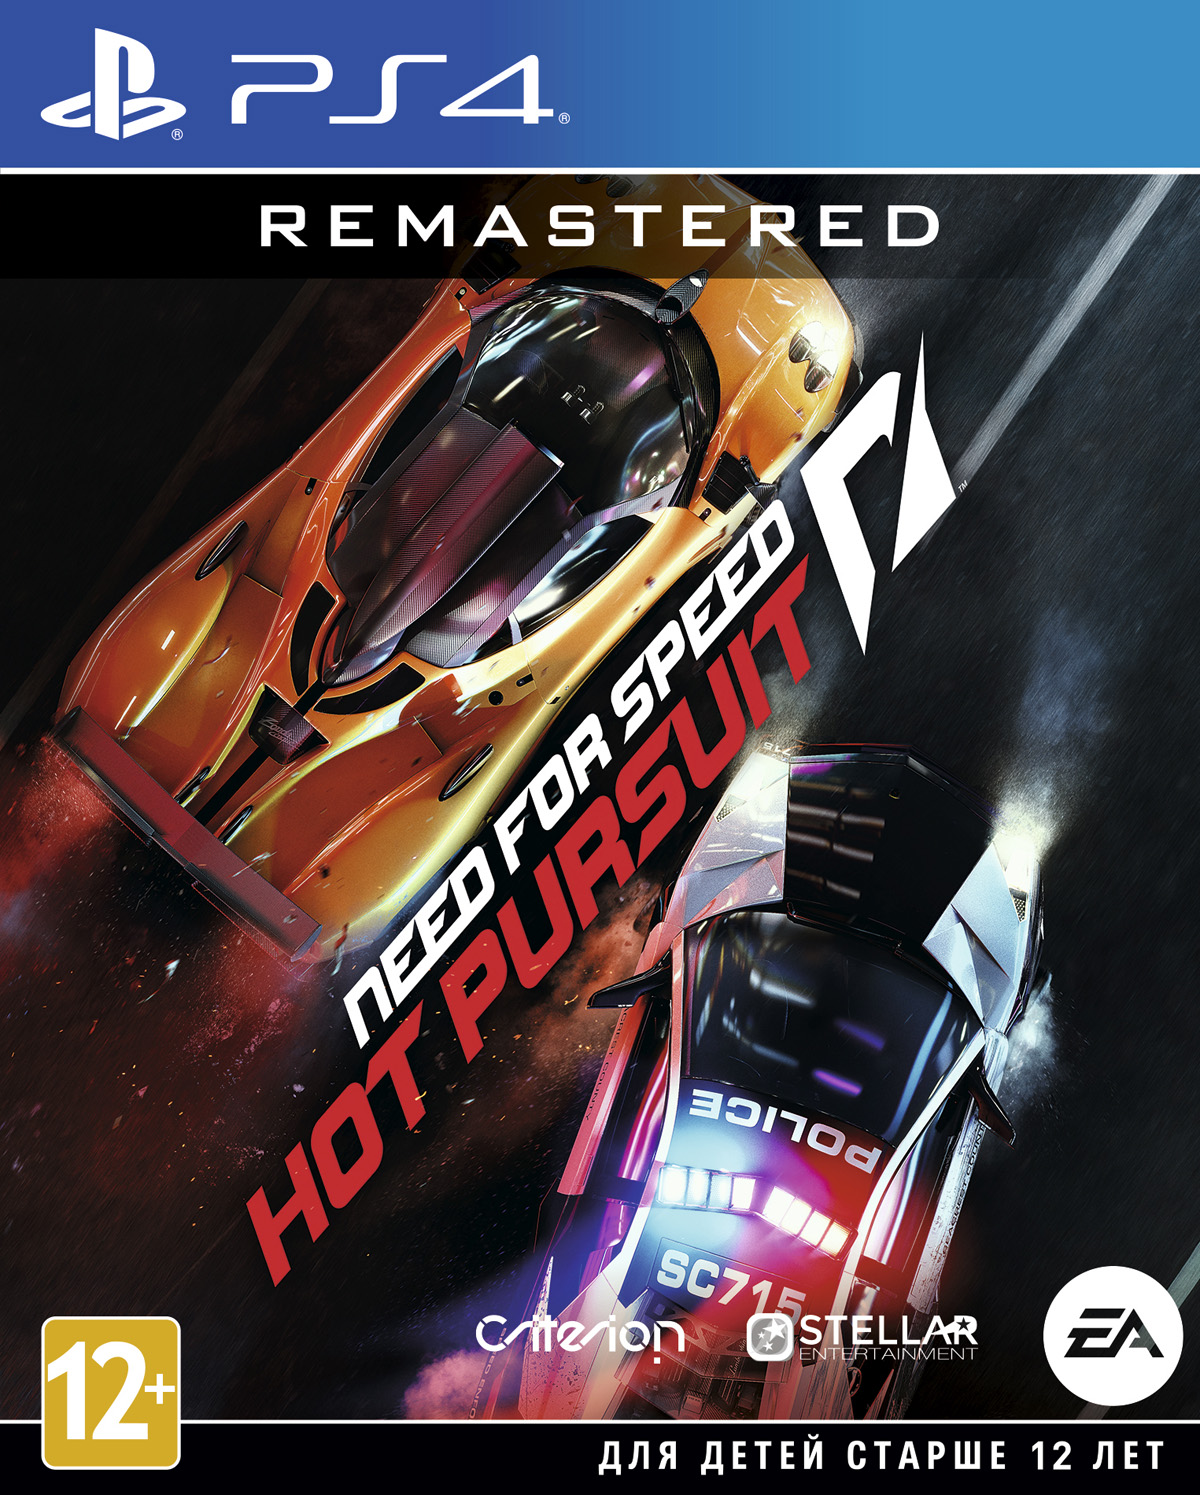 Need for Speed: Hot Pursuit Remastered [PS4] 5.05 / 6.72 / 7.02 / 7.55 [EUR] (2020) [Русский] (v1.01)